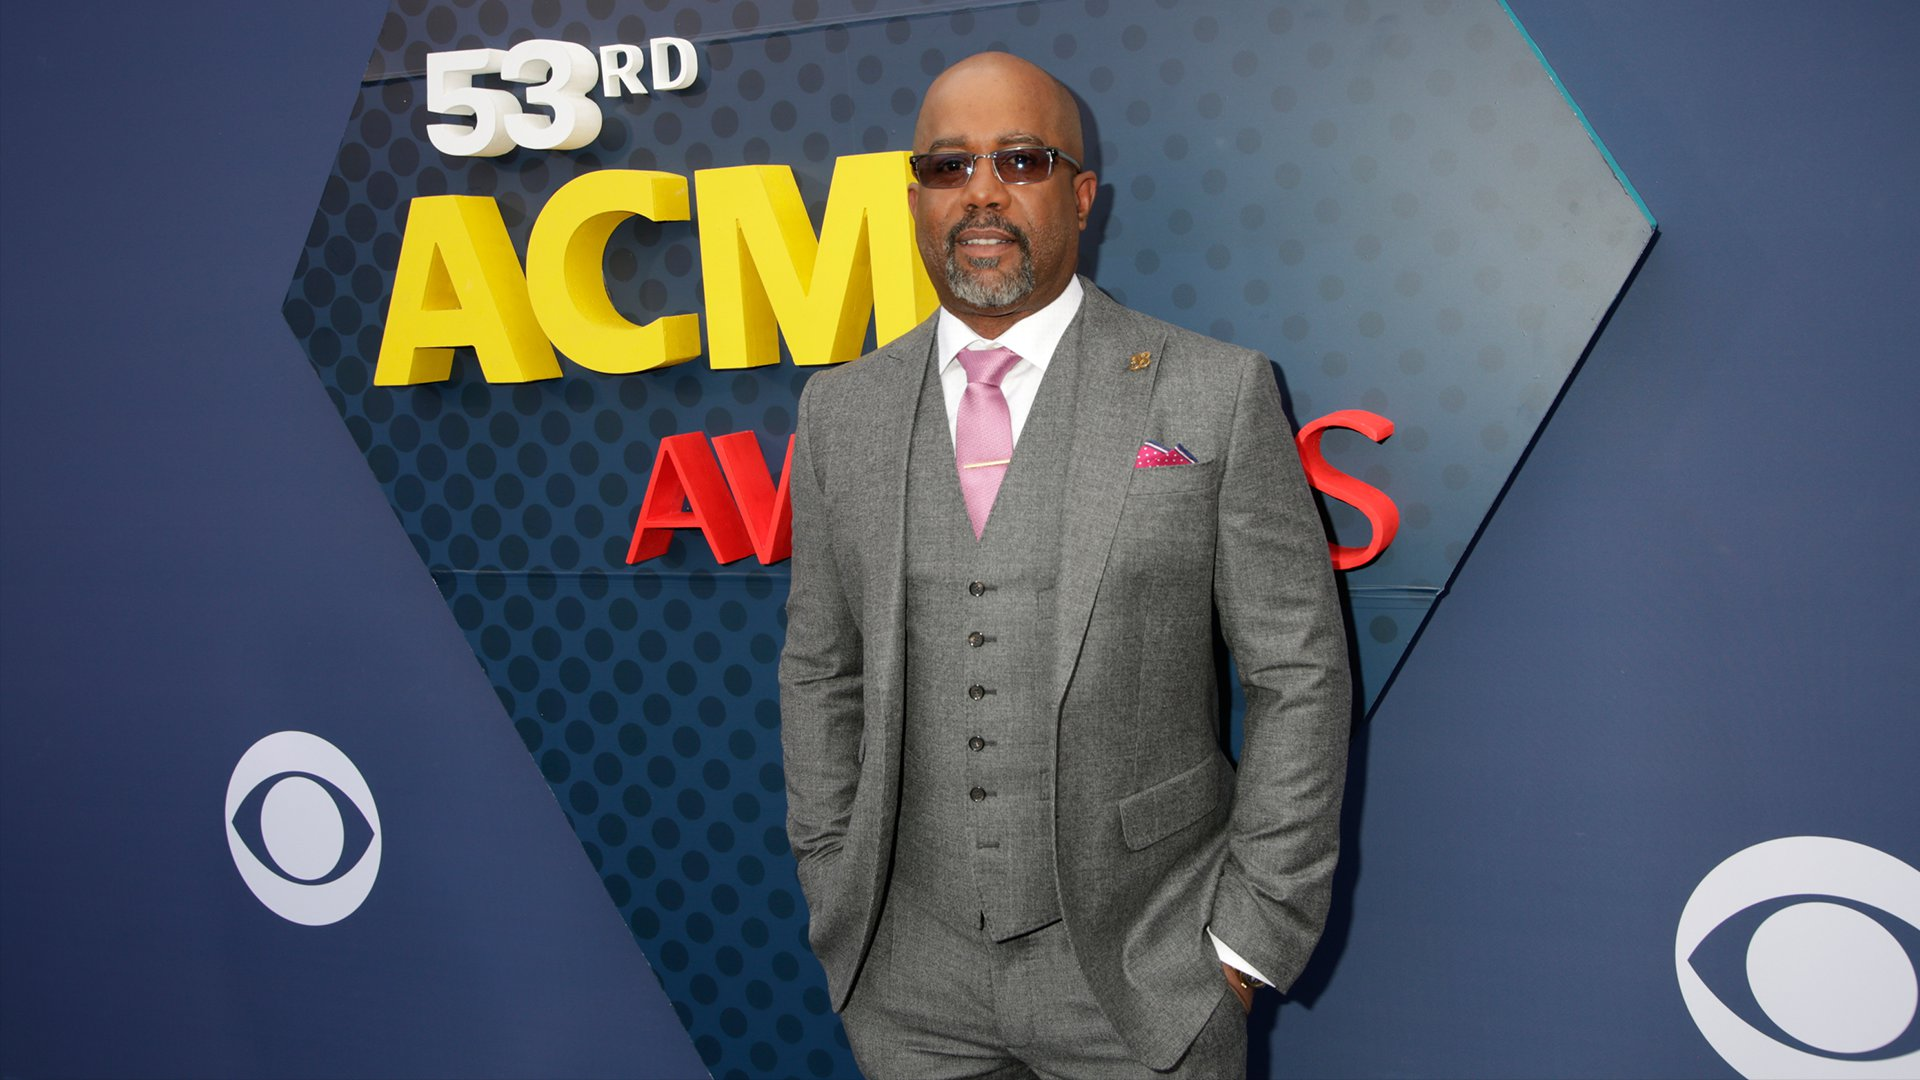 Darius Rucker accents his crisp gray suit with a pink tie and matching pocket square.